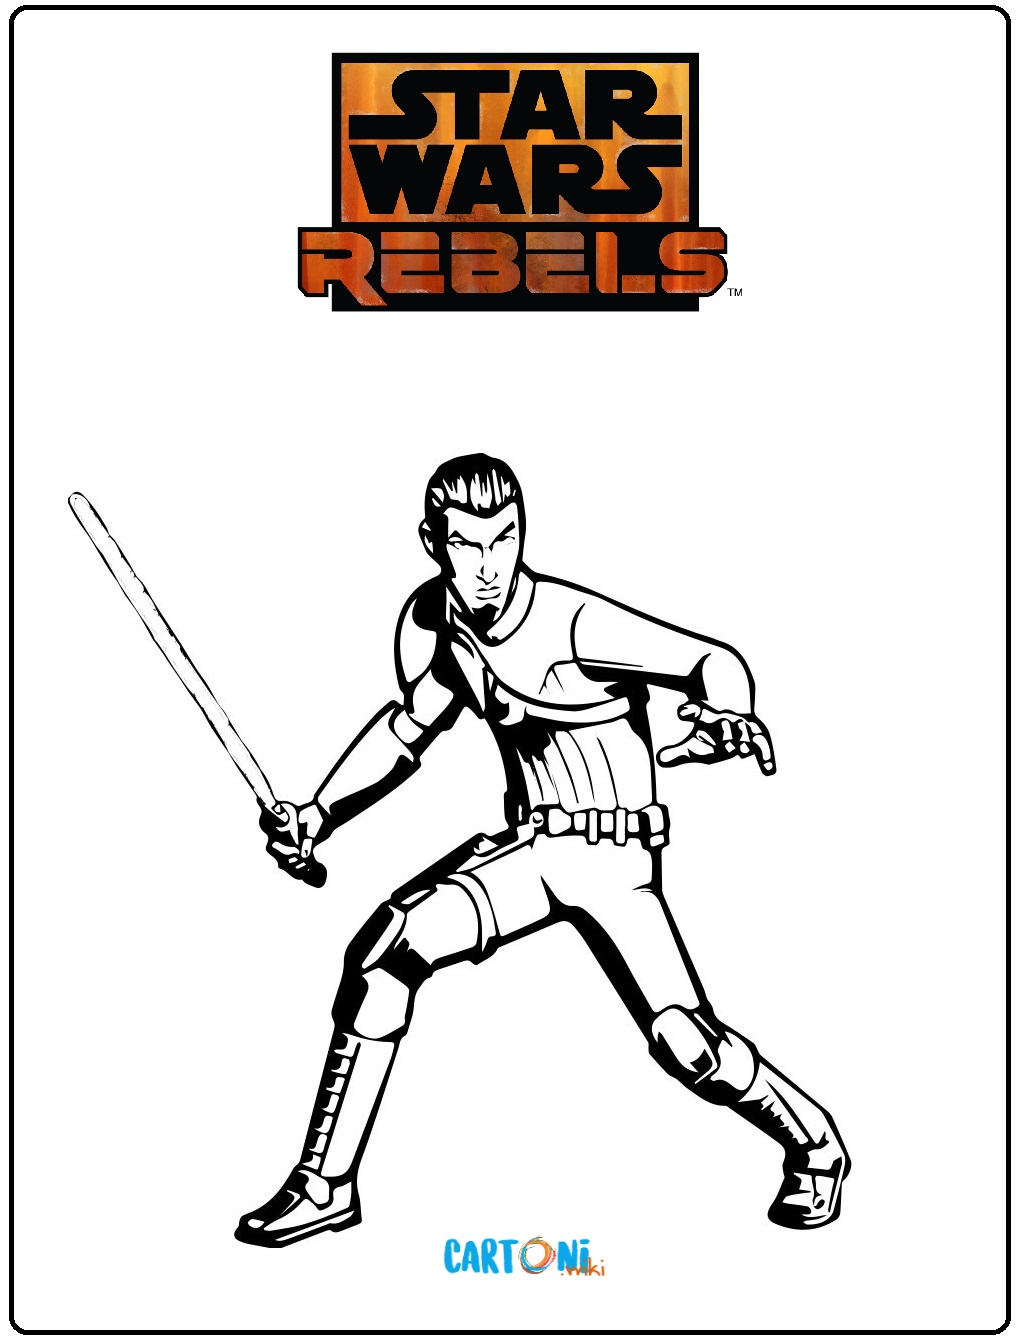 Disegni Da Colorare Star Wars Rebels.Star Wars Rebels Disegni Da Colorare Cartoni Animati